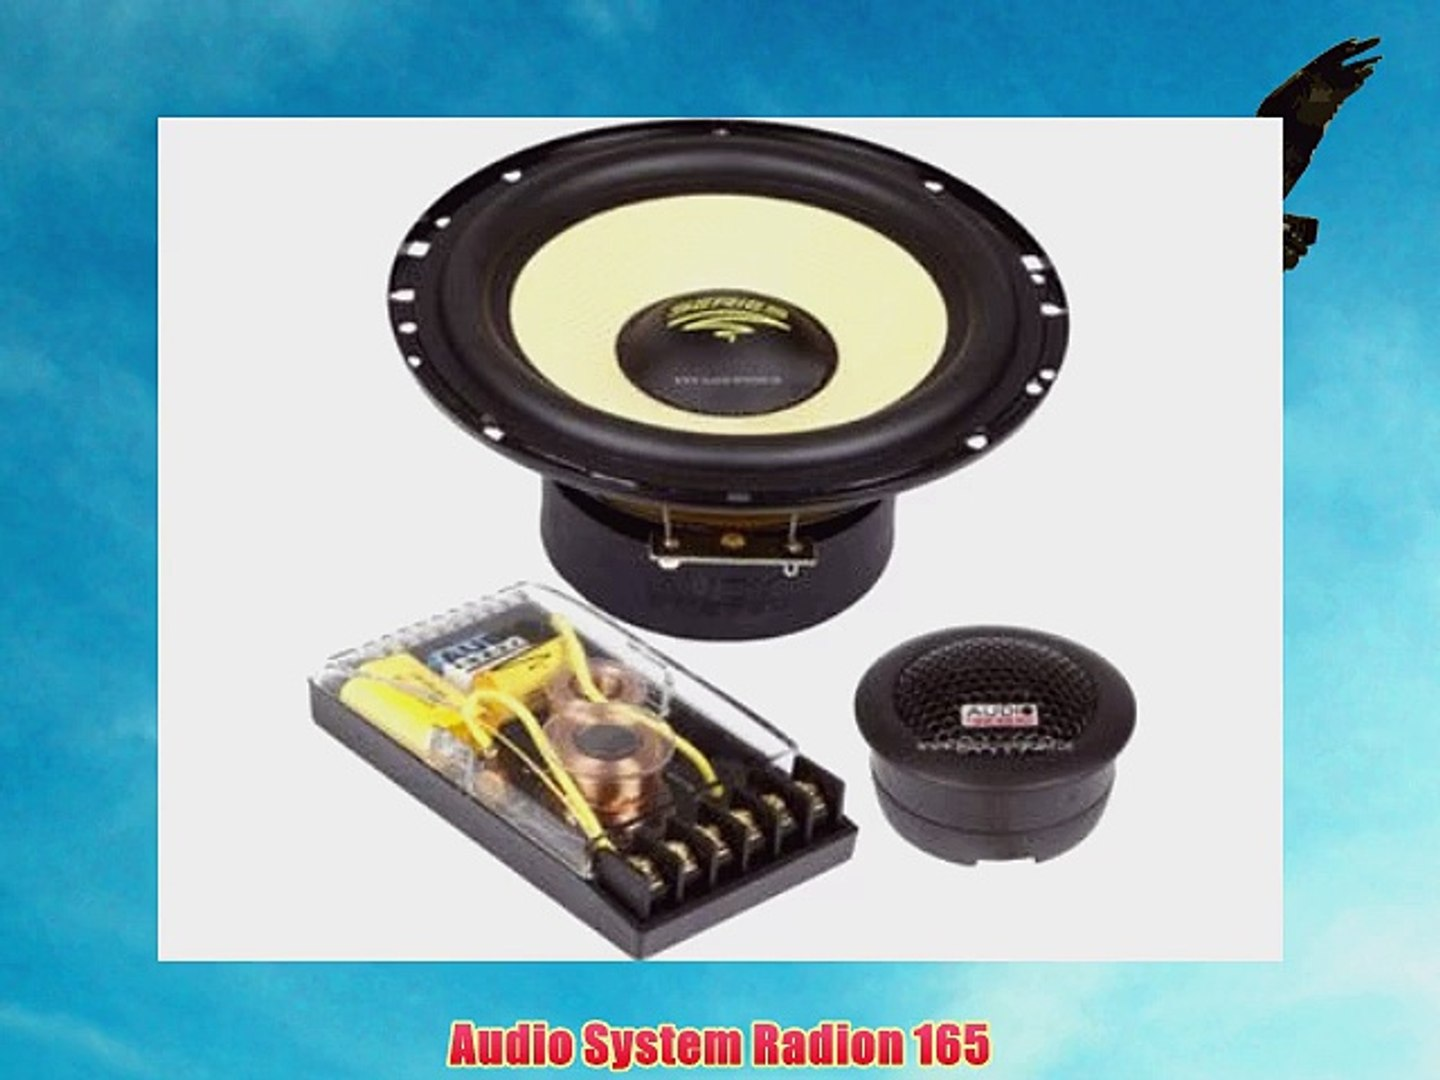 Audio System Radion 165 Video Dailymotion